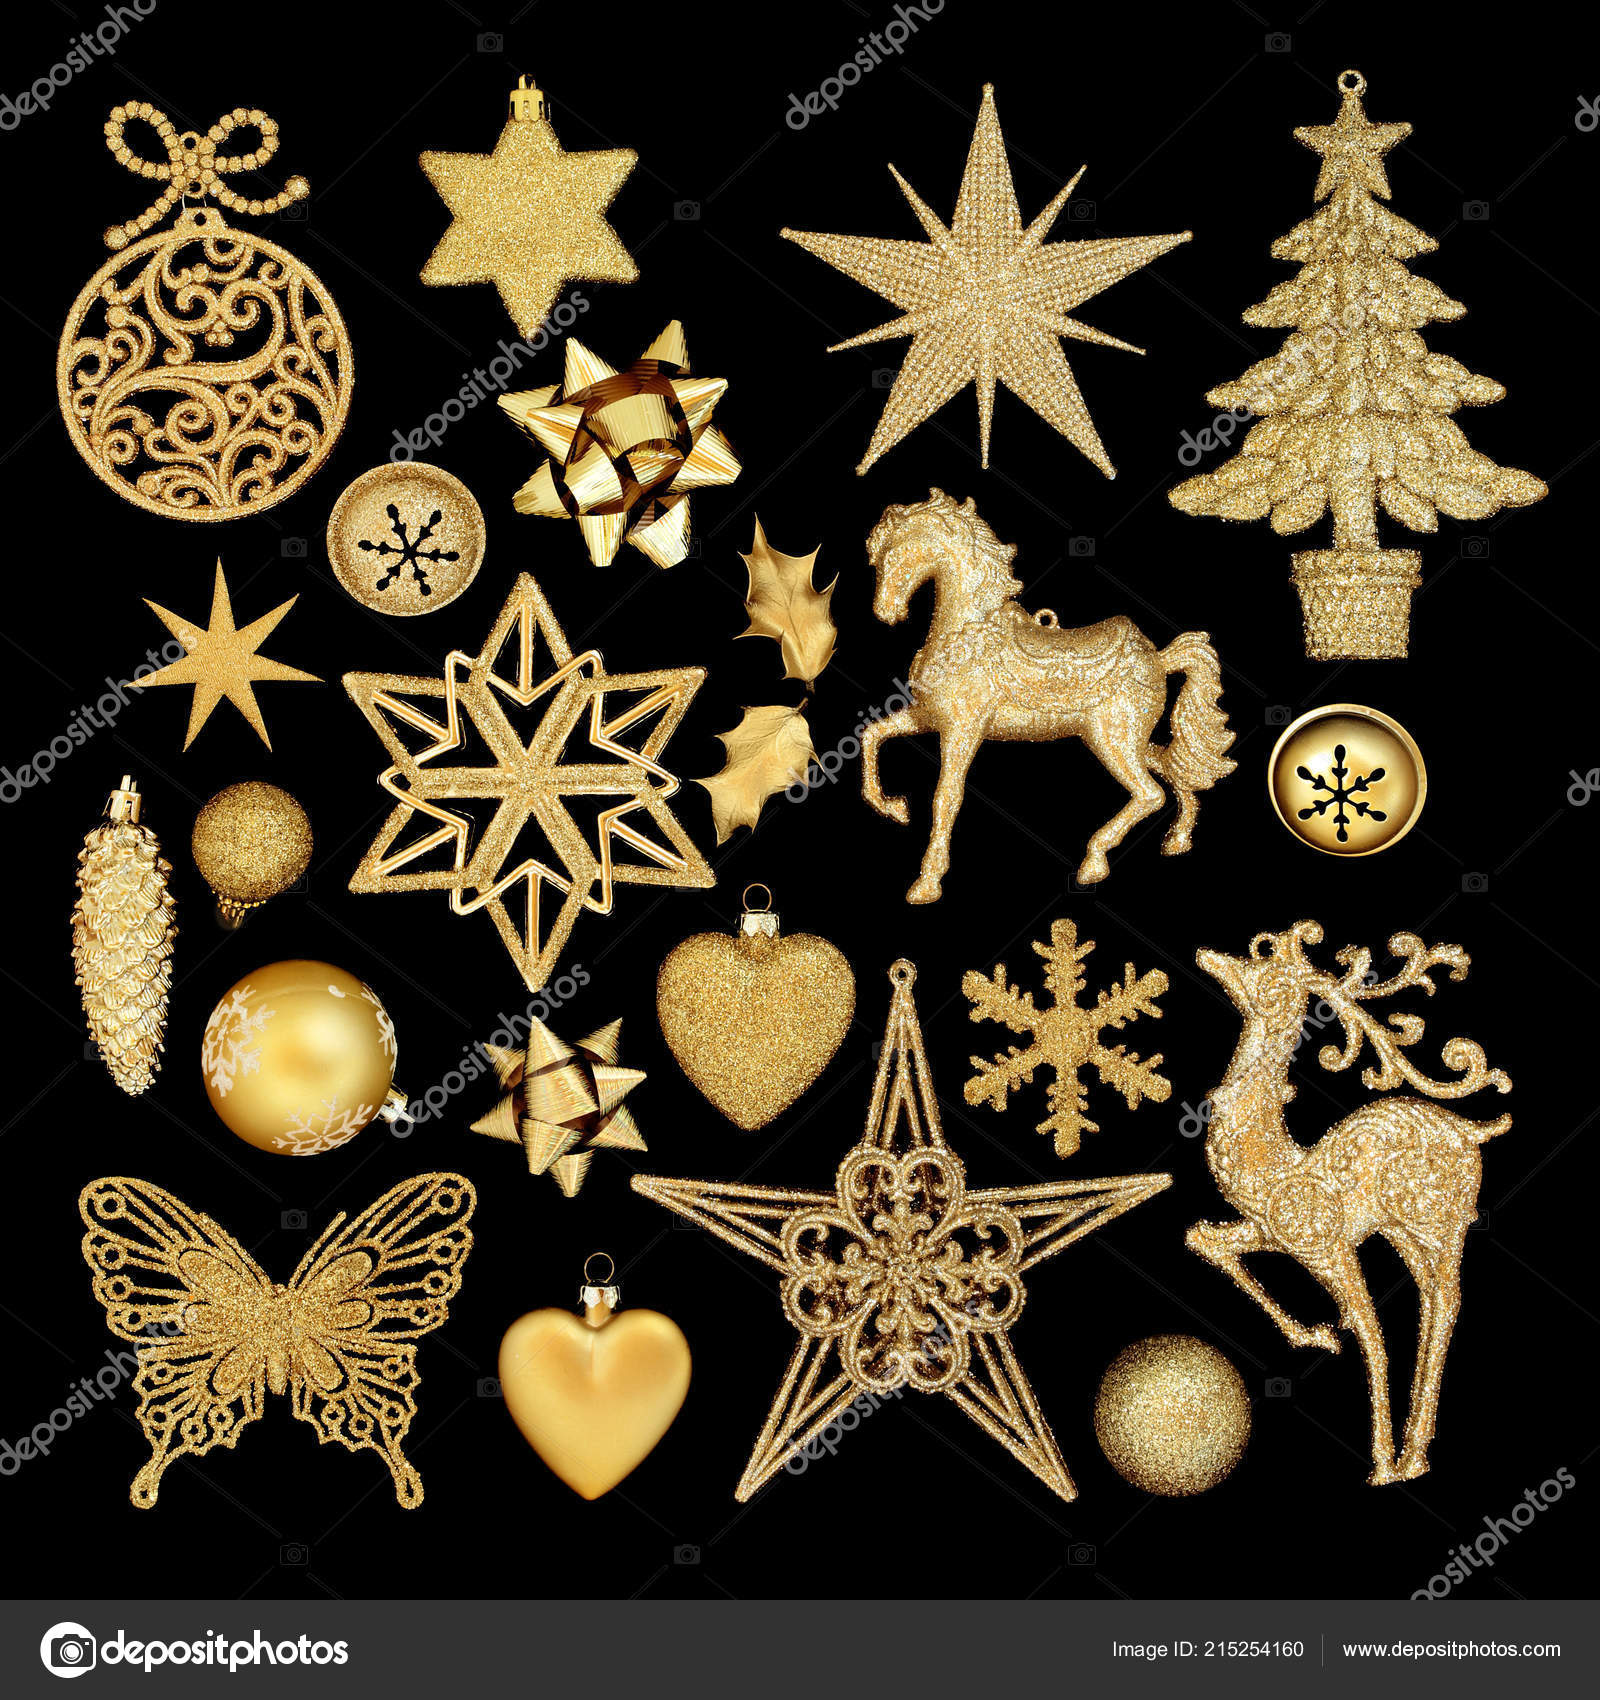 Black And Gold Christmas Baubles Gold Christmas Tree Bauble Decorations Isolated Black Background Stock Photo C Marilyna 215254160